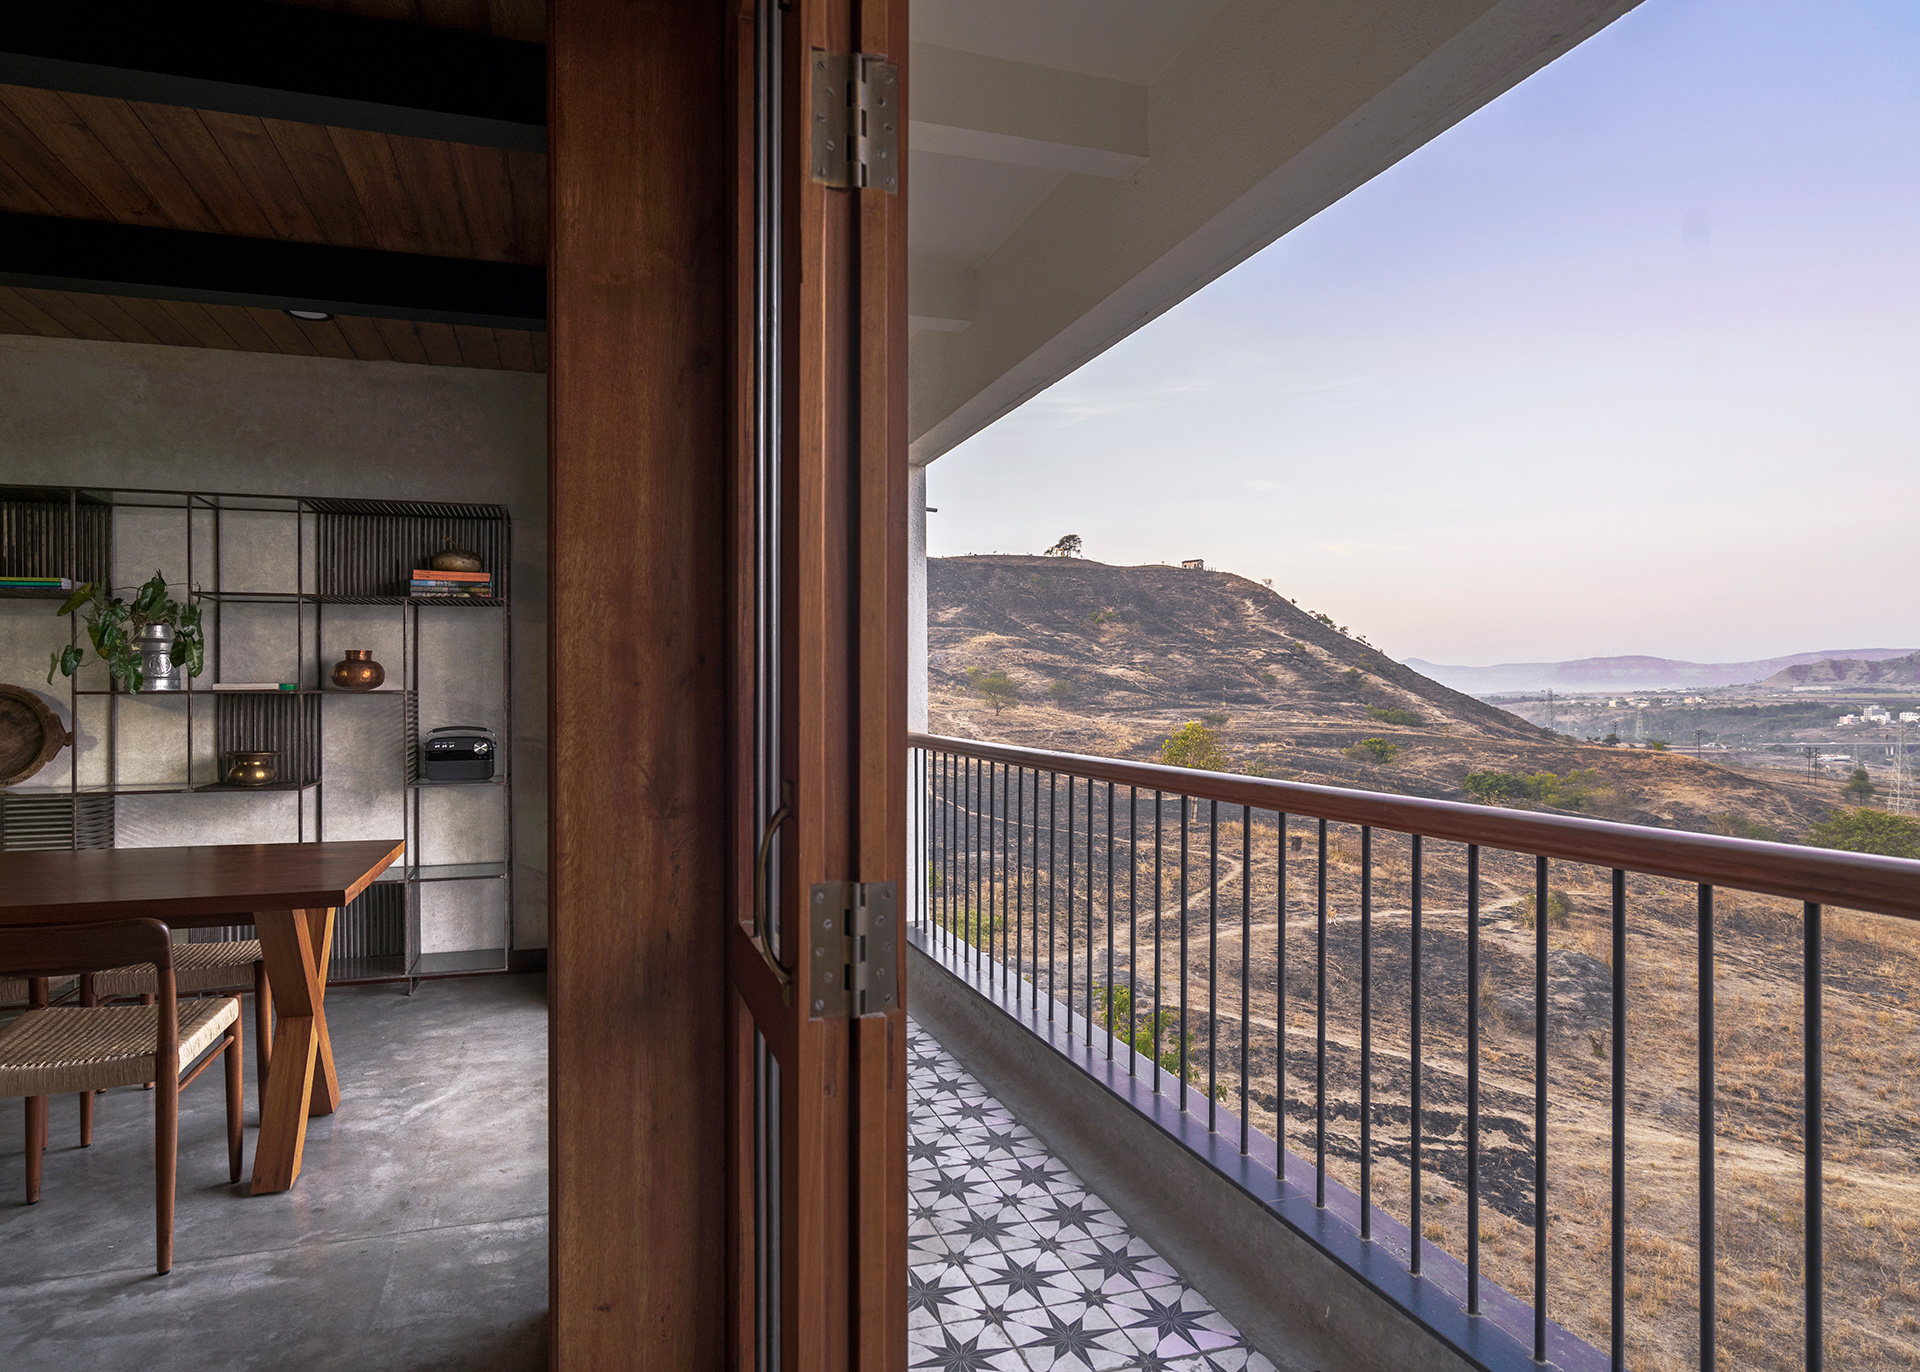 Looking out over the hilly landscape from the living/dining area | Amoeba Design | STIRworld